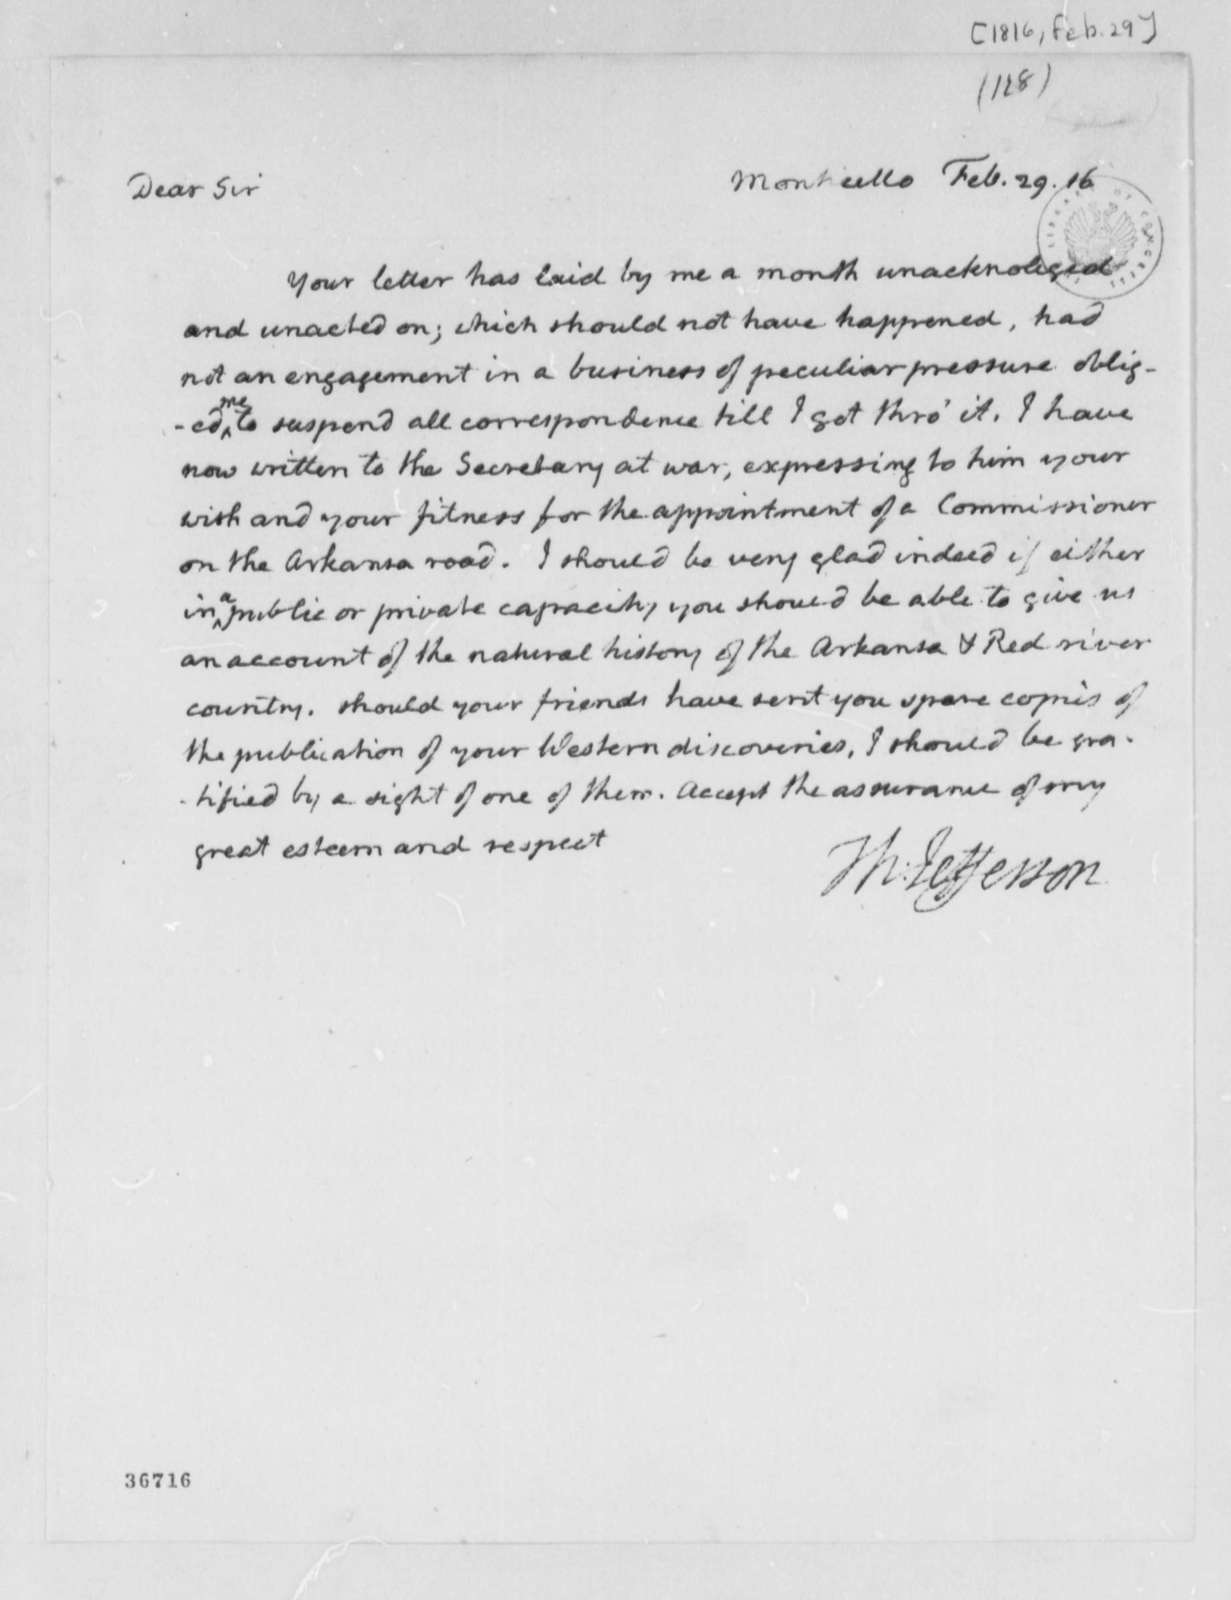 Thomas Jefferson to John Bradbury, February 29, 1816, with Copy